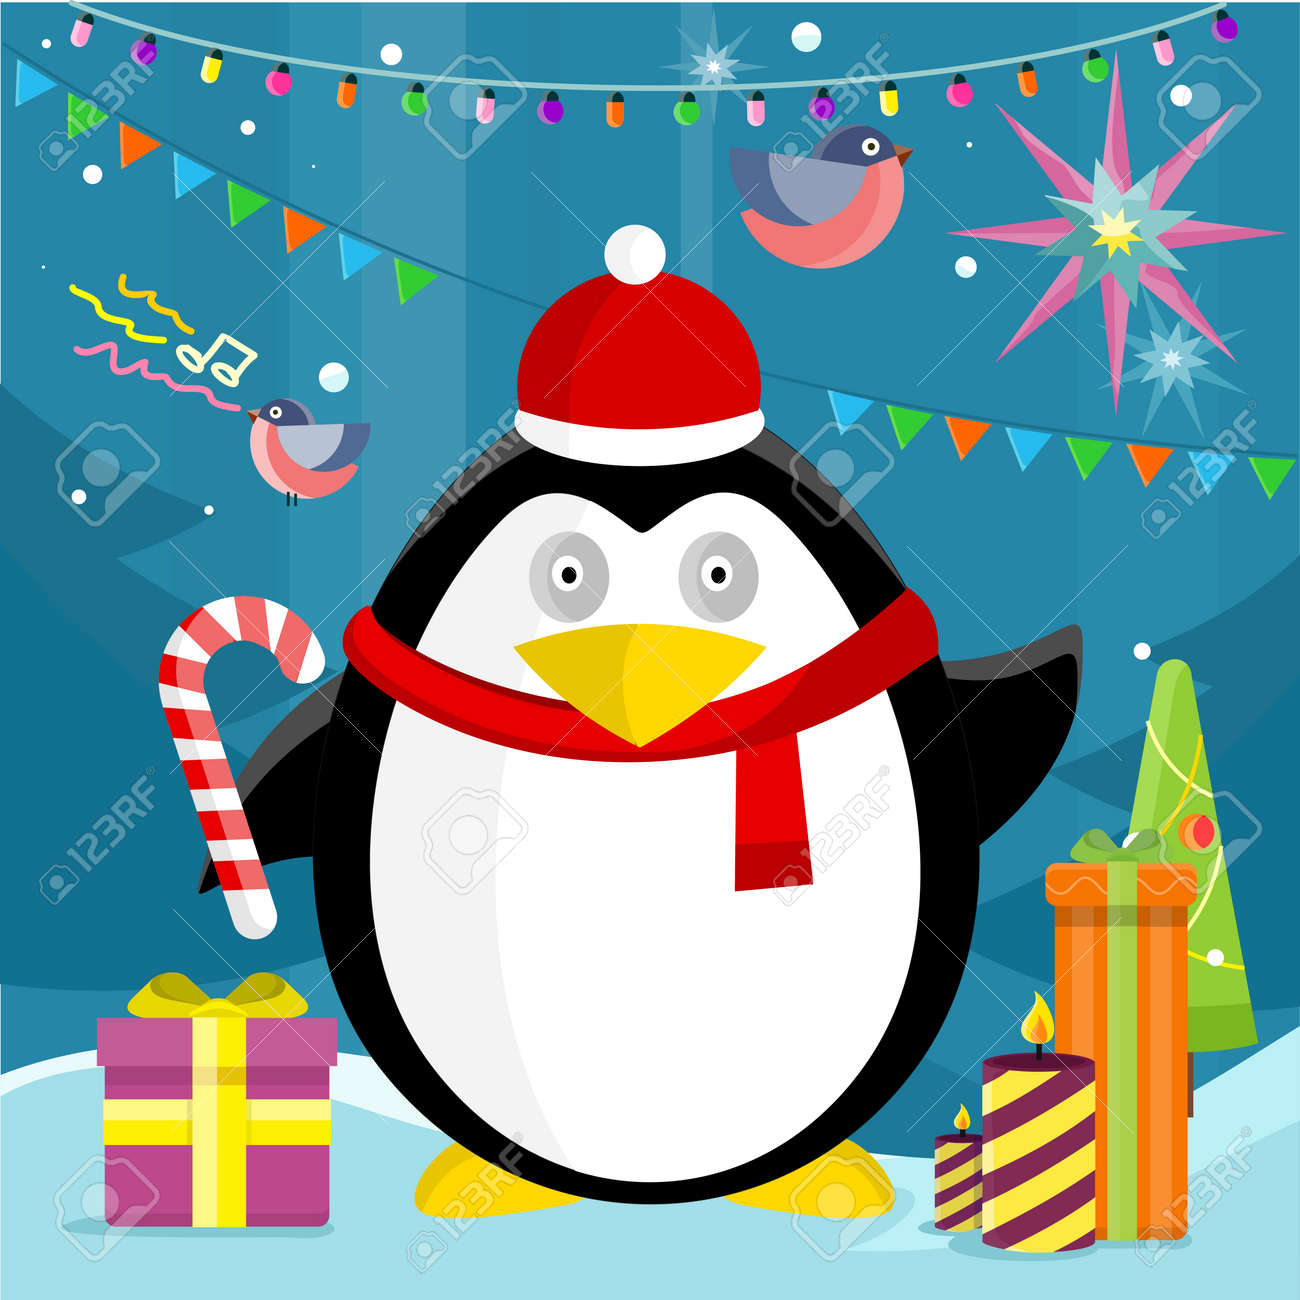 e3f7de56cd820 Penguin with candy stick near christmas presents on background with snow